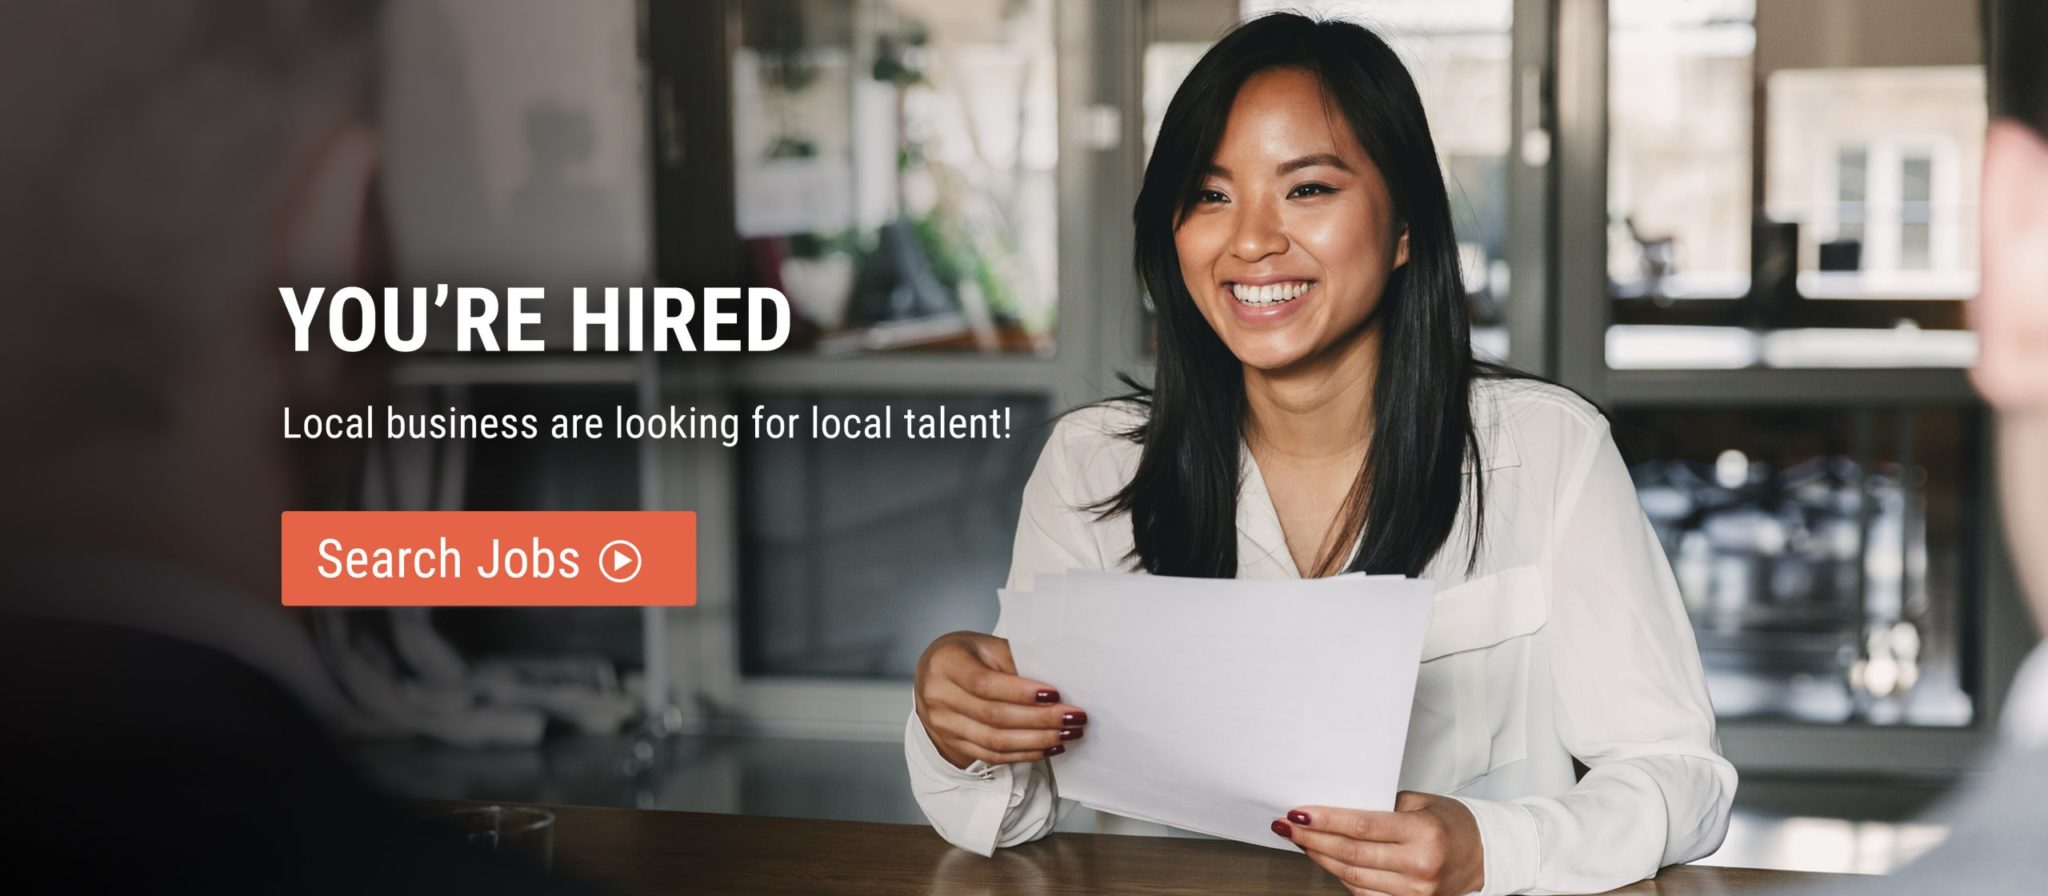 smiling woman on job interview hold resume text saying you're hired